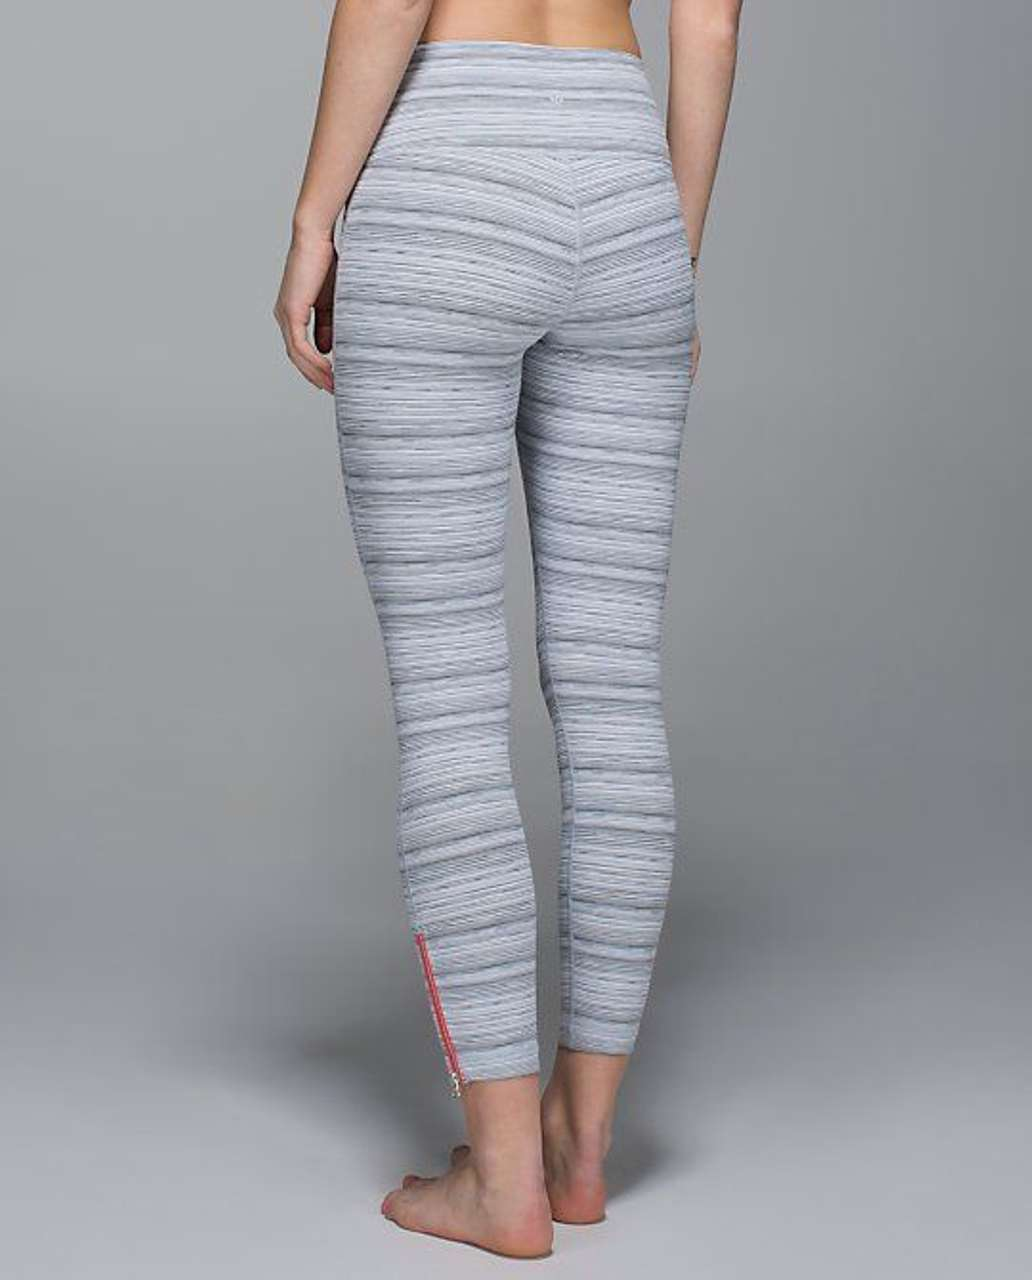 Lululemon High Times Pant *Zip - Cyber Stripe White / Silver Fox / Flare